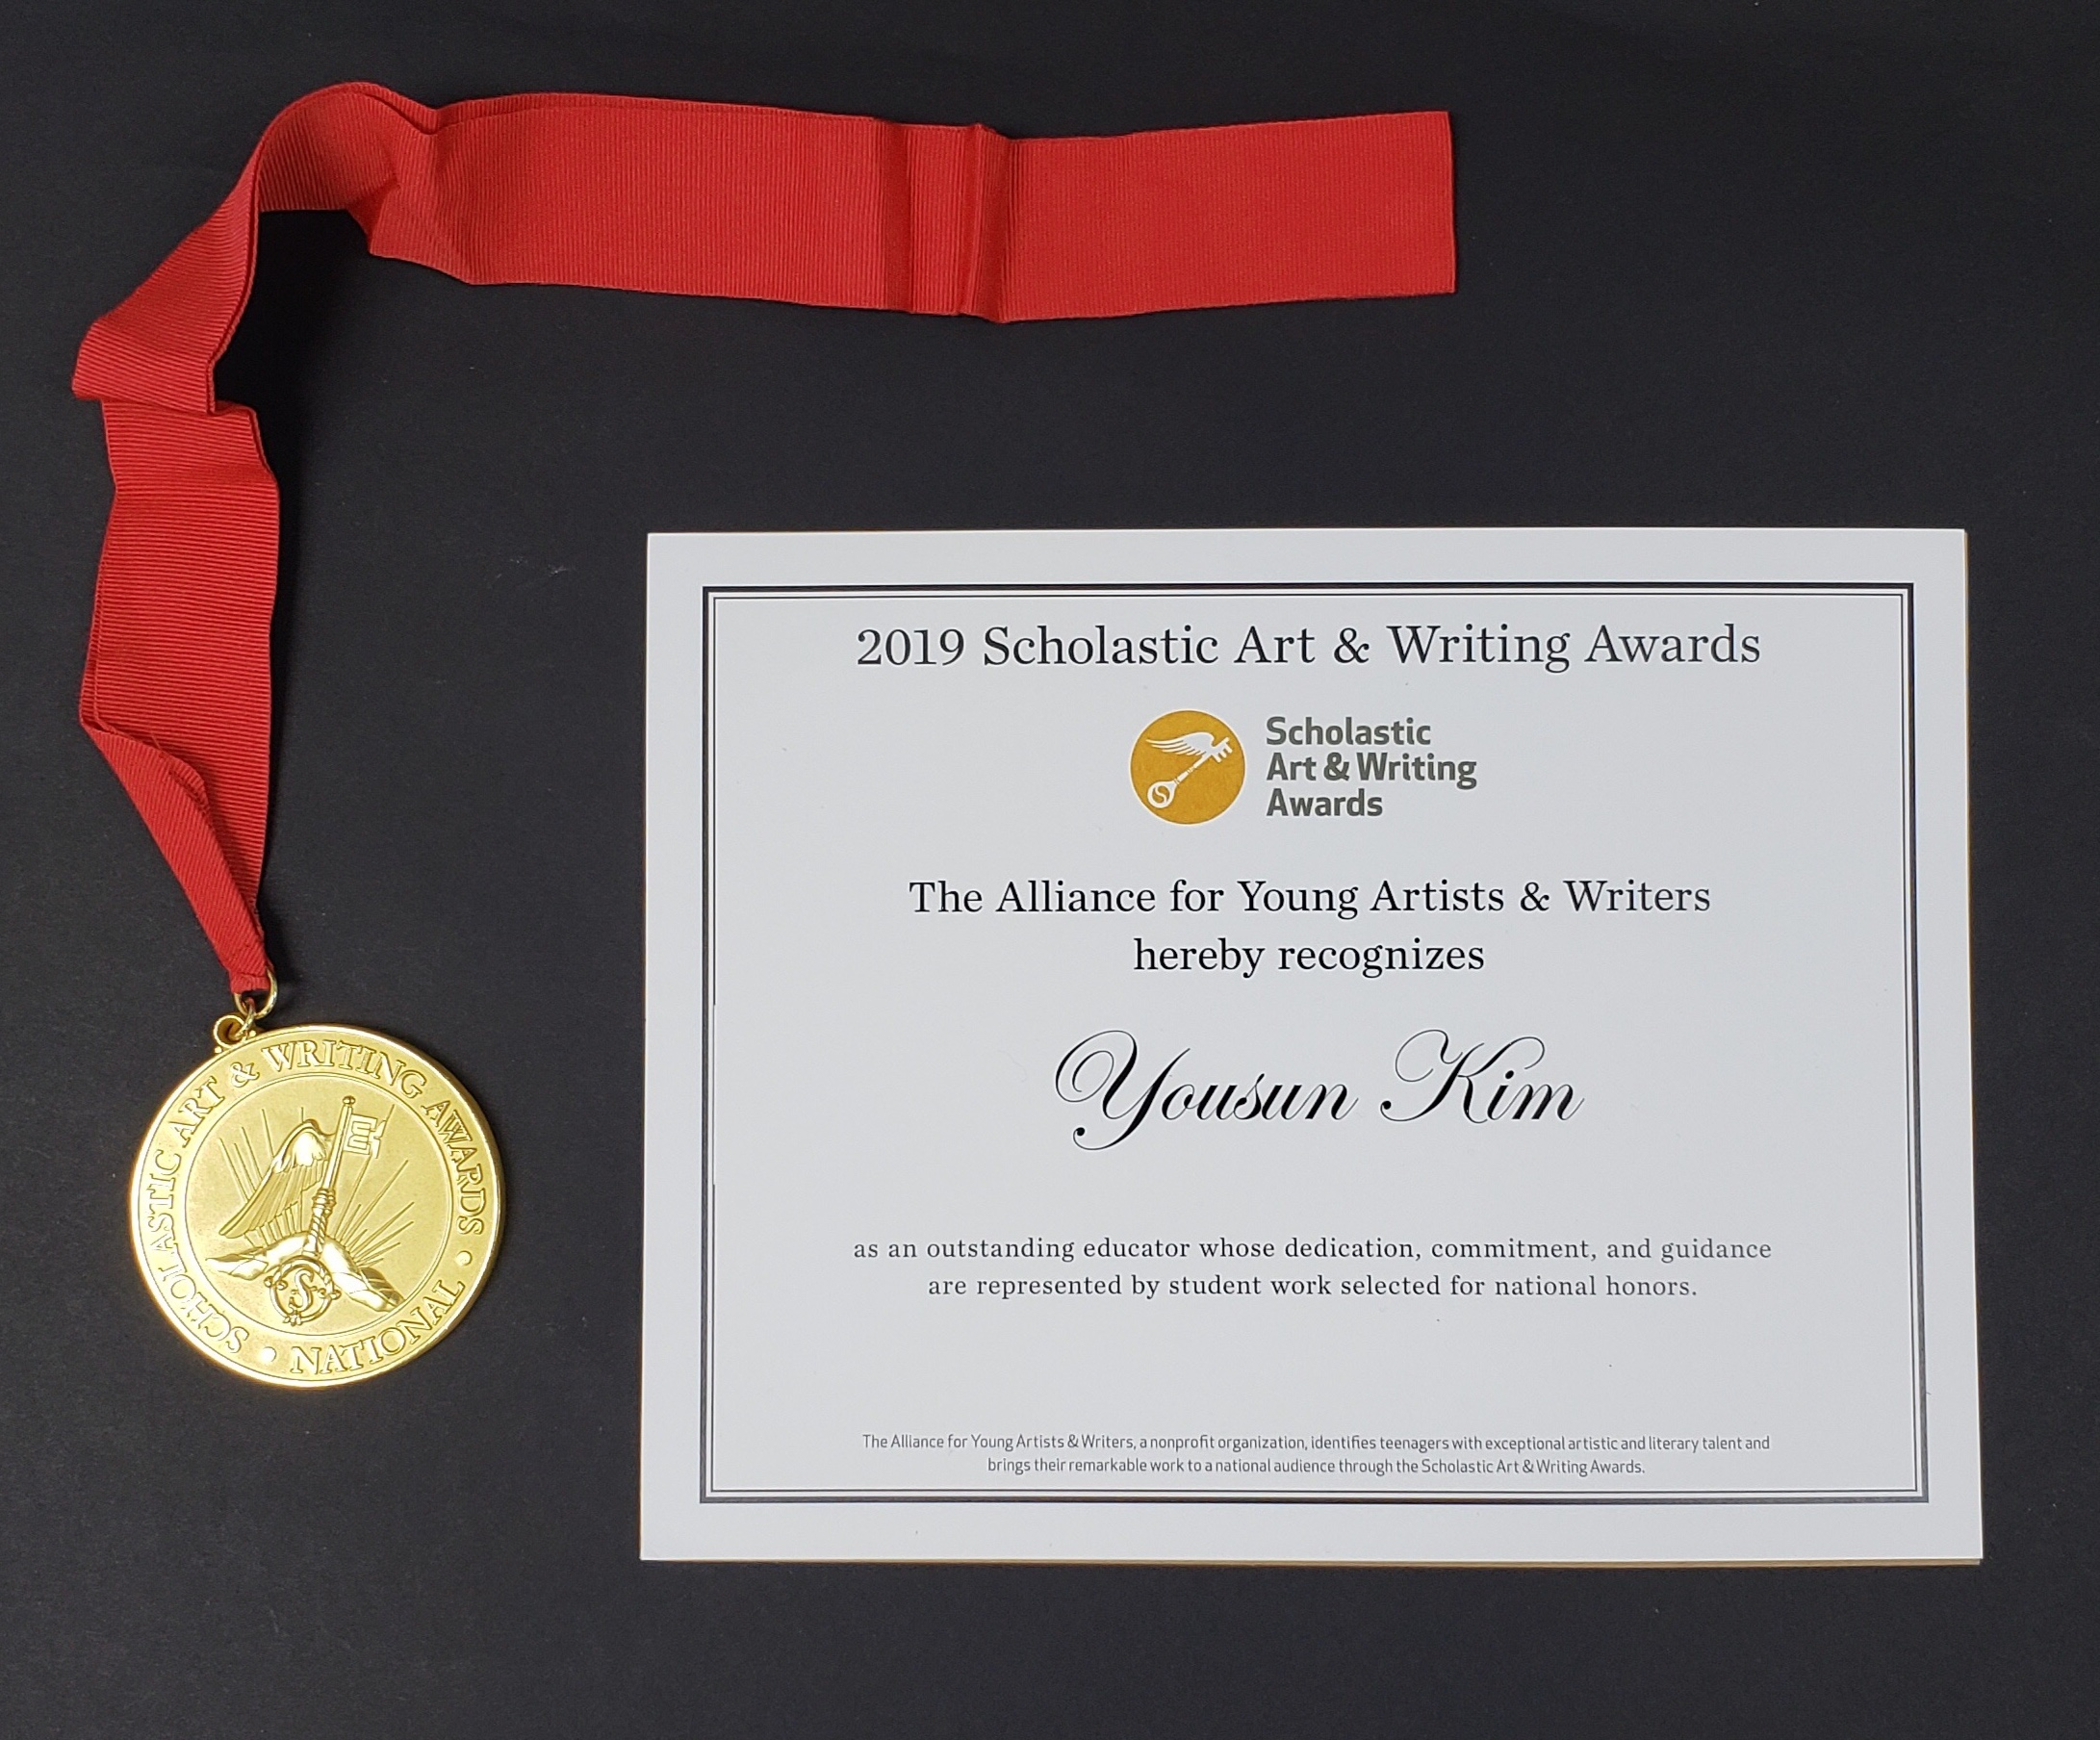 Congratulation! - 2019 Scholastic Art & Writing Gold Medal2018 Scholastic Art & Writing Silver Medal2017 Scholastic Art & Writing Gold MedalAN OUTSTANDING EDUCATOR